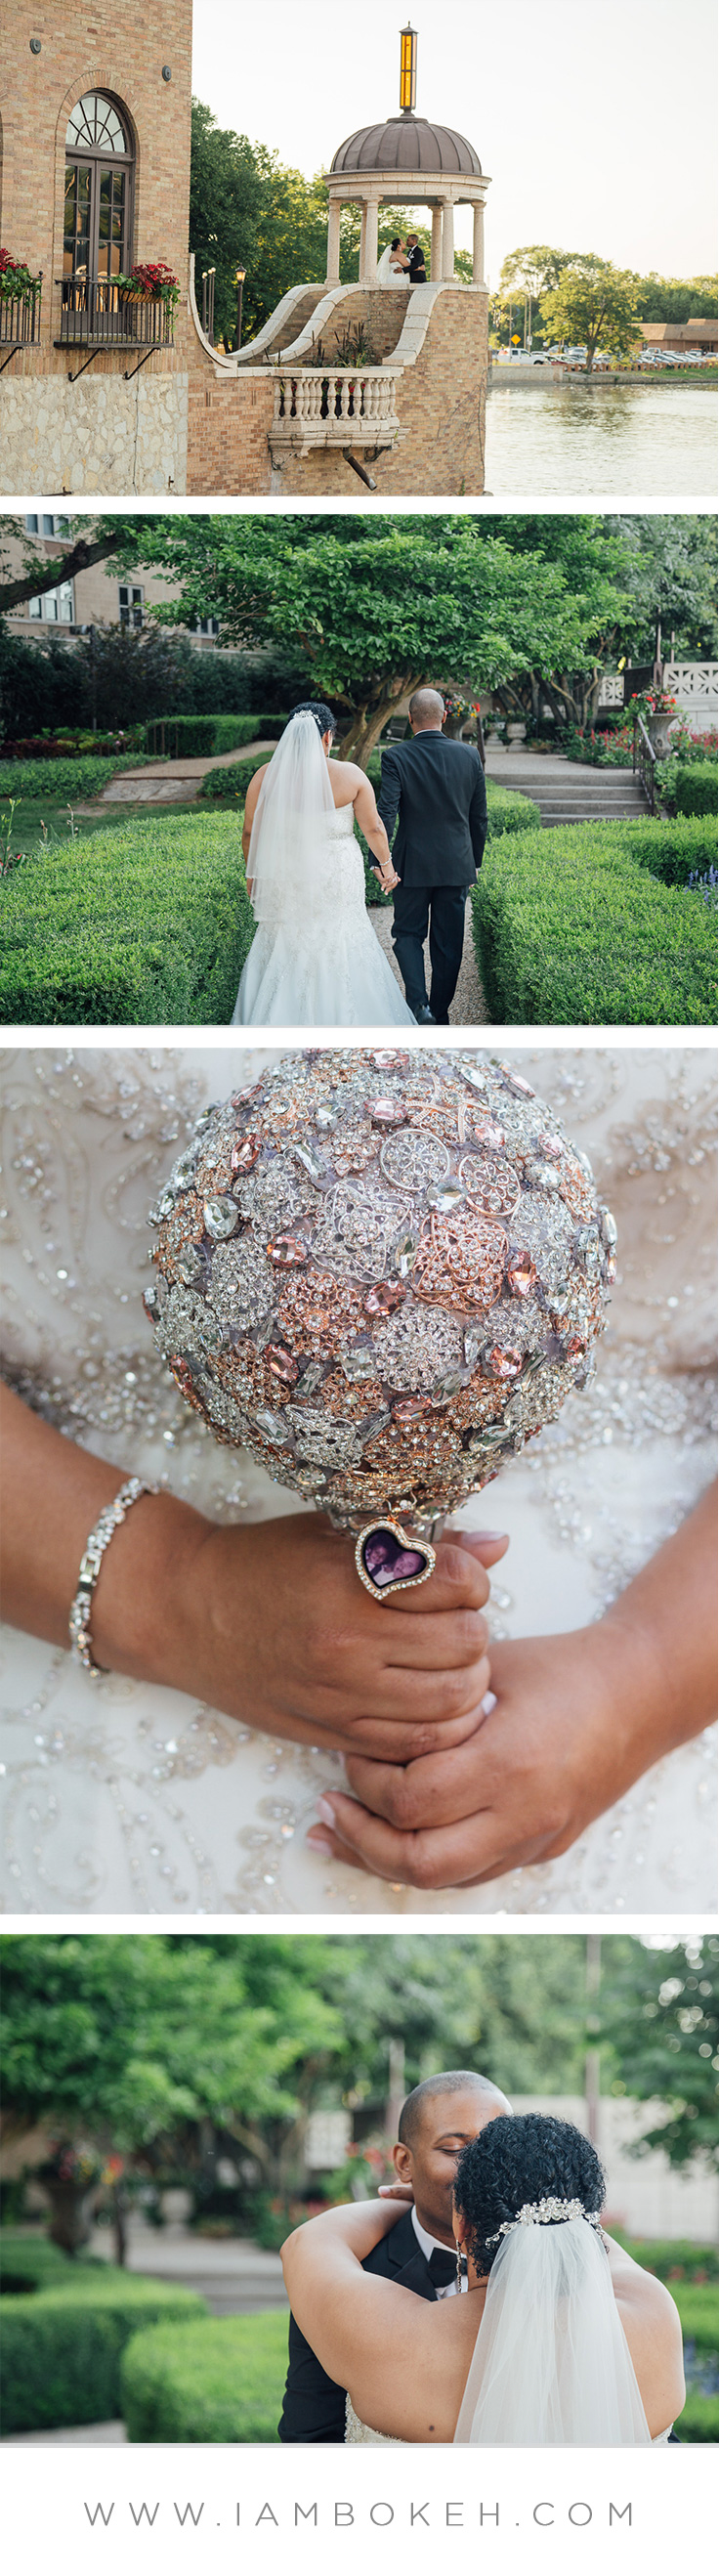 Bokéh Studios | St. Charles Wedding at Hotel Baker